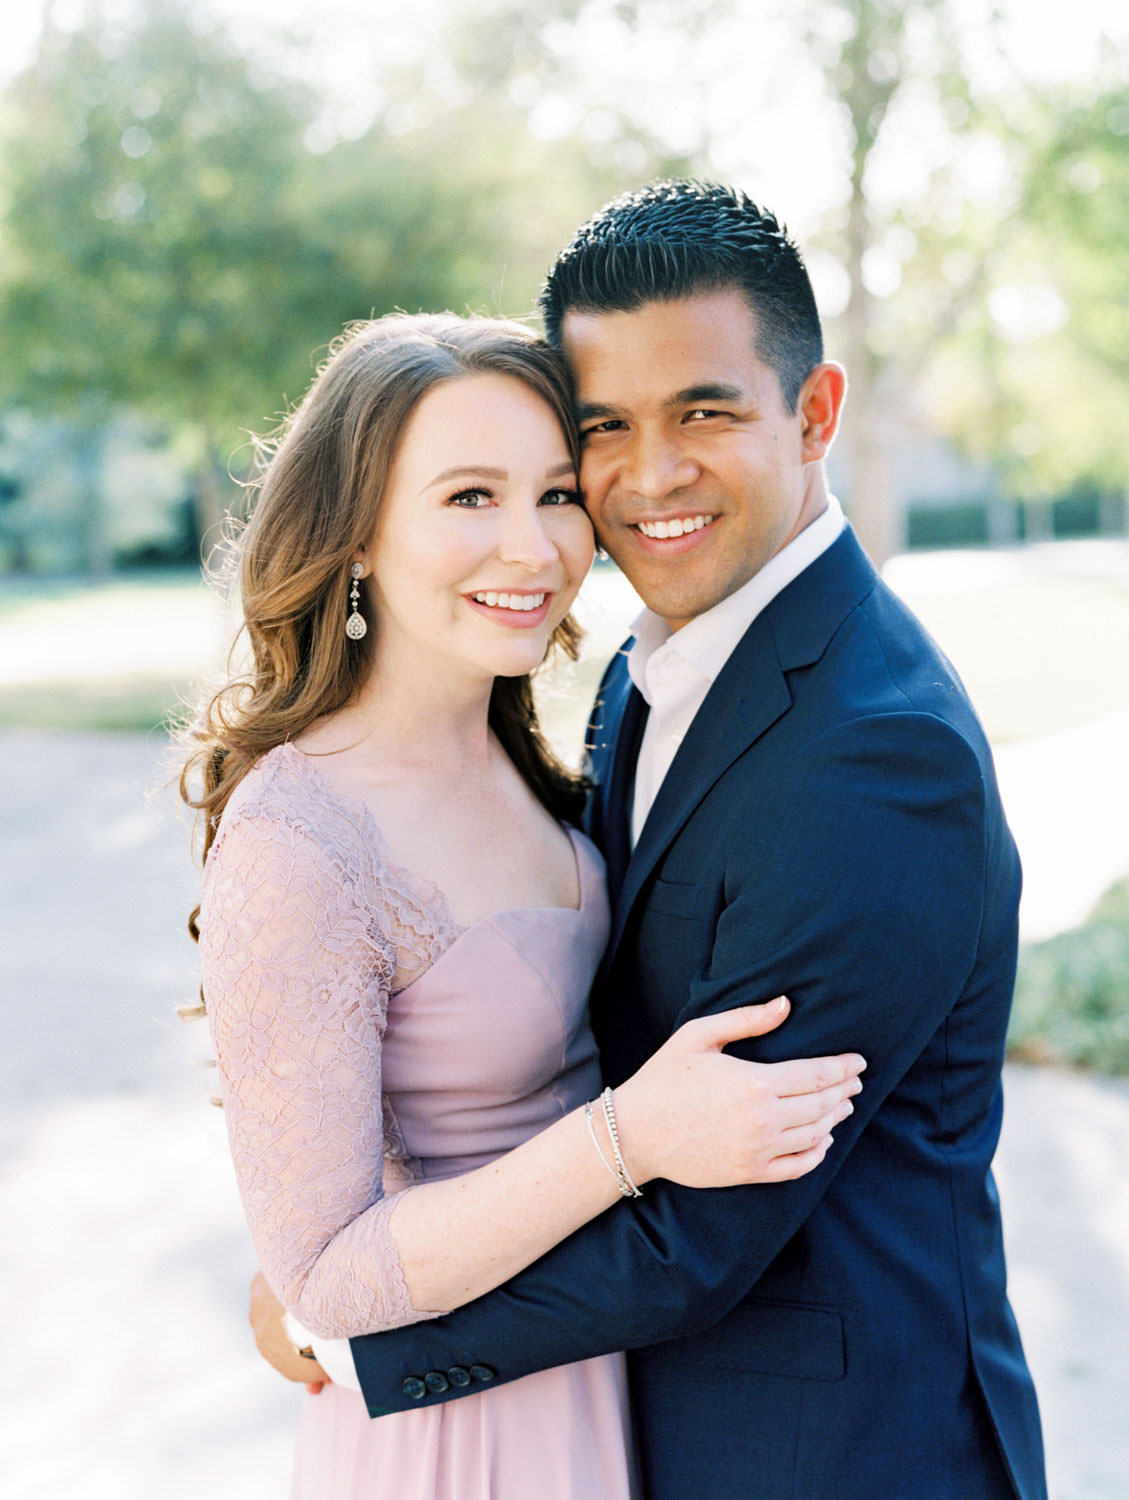 UC Riverside Engagement session. Bride in long blush lavender dress and groom in navy suit. Film photographer Cavin Elizabeth Photography.